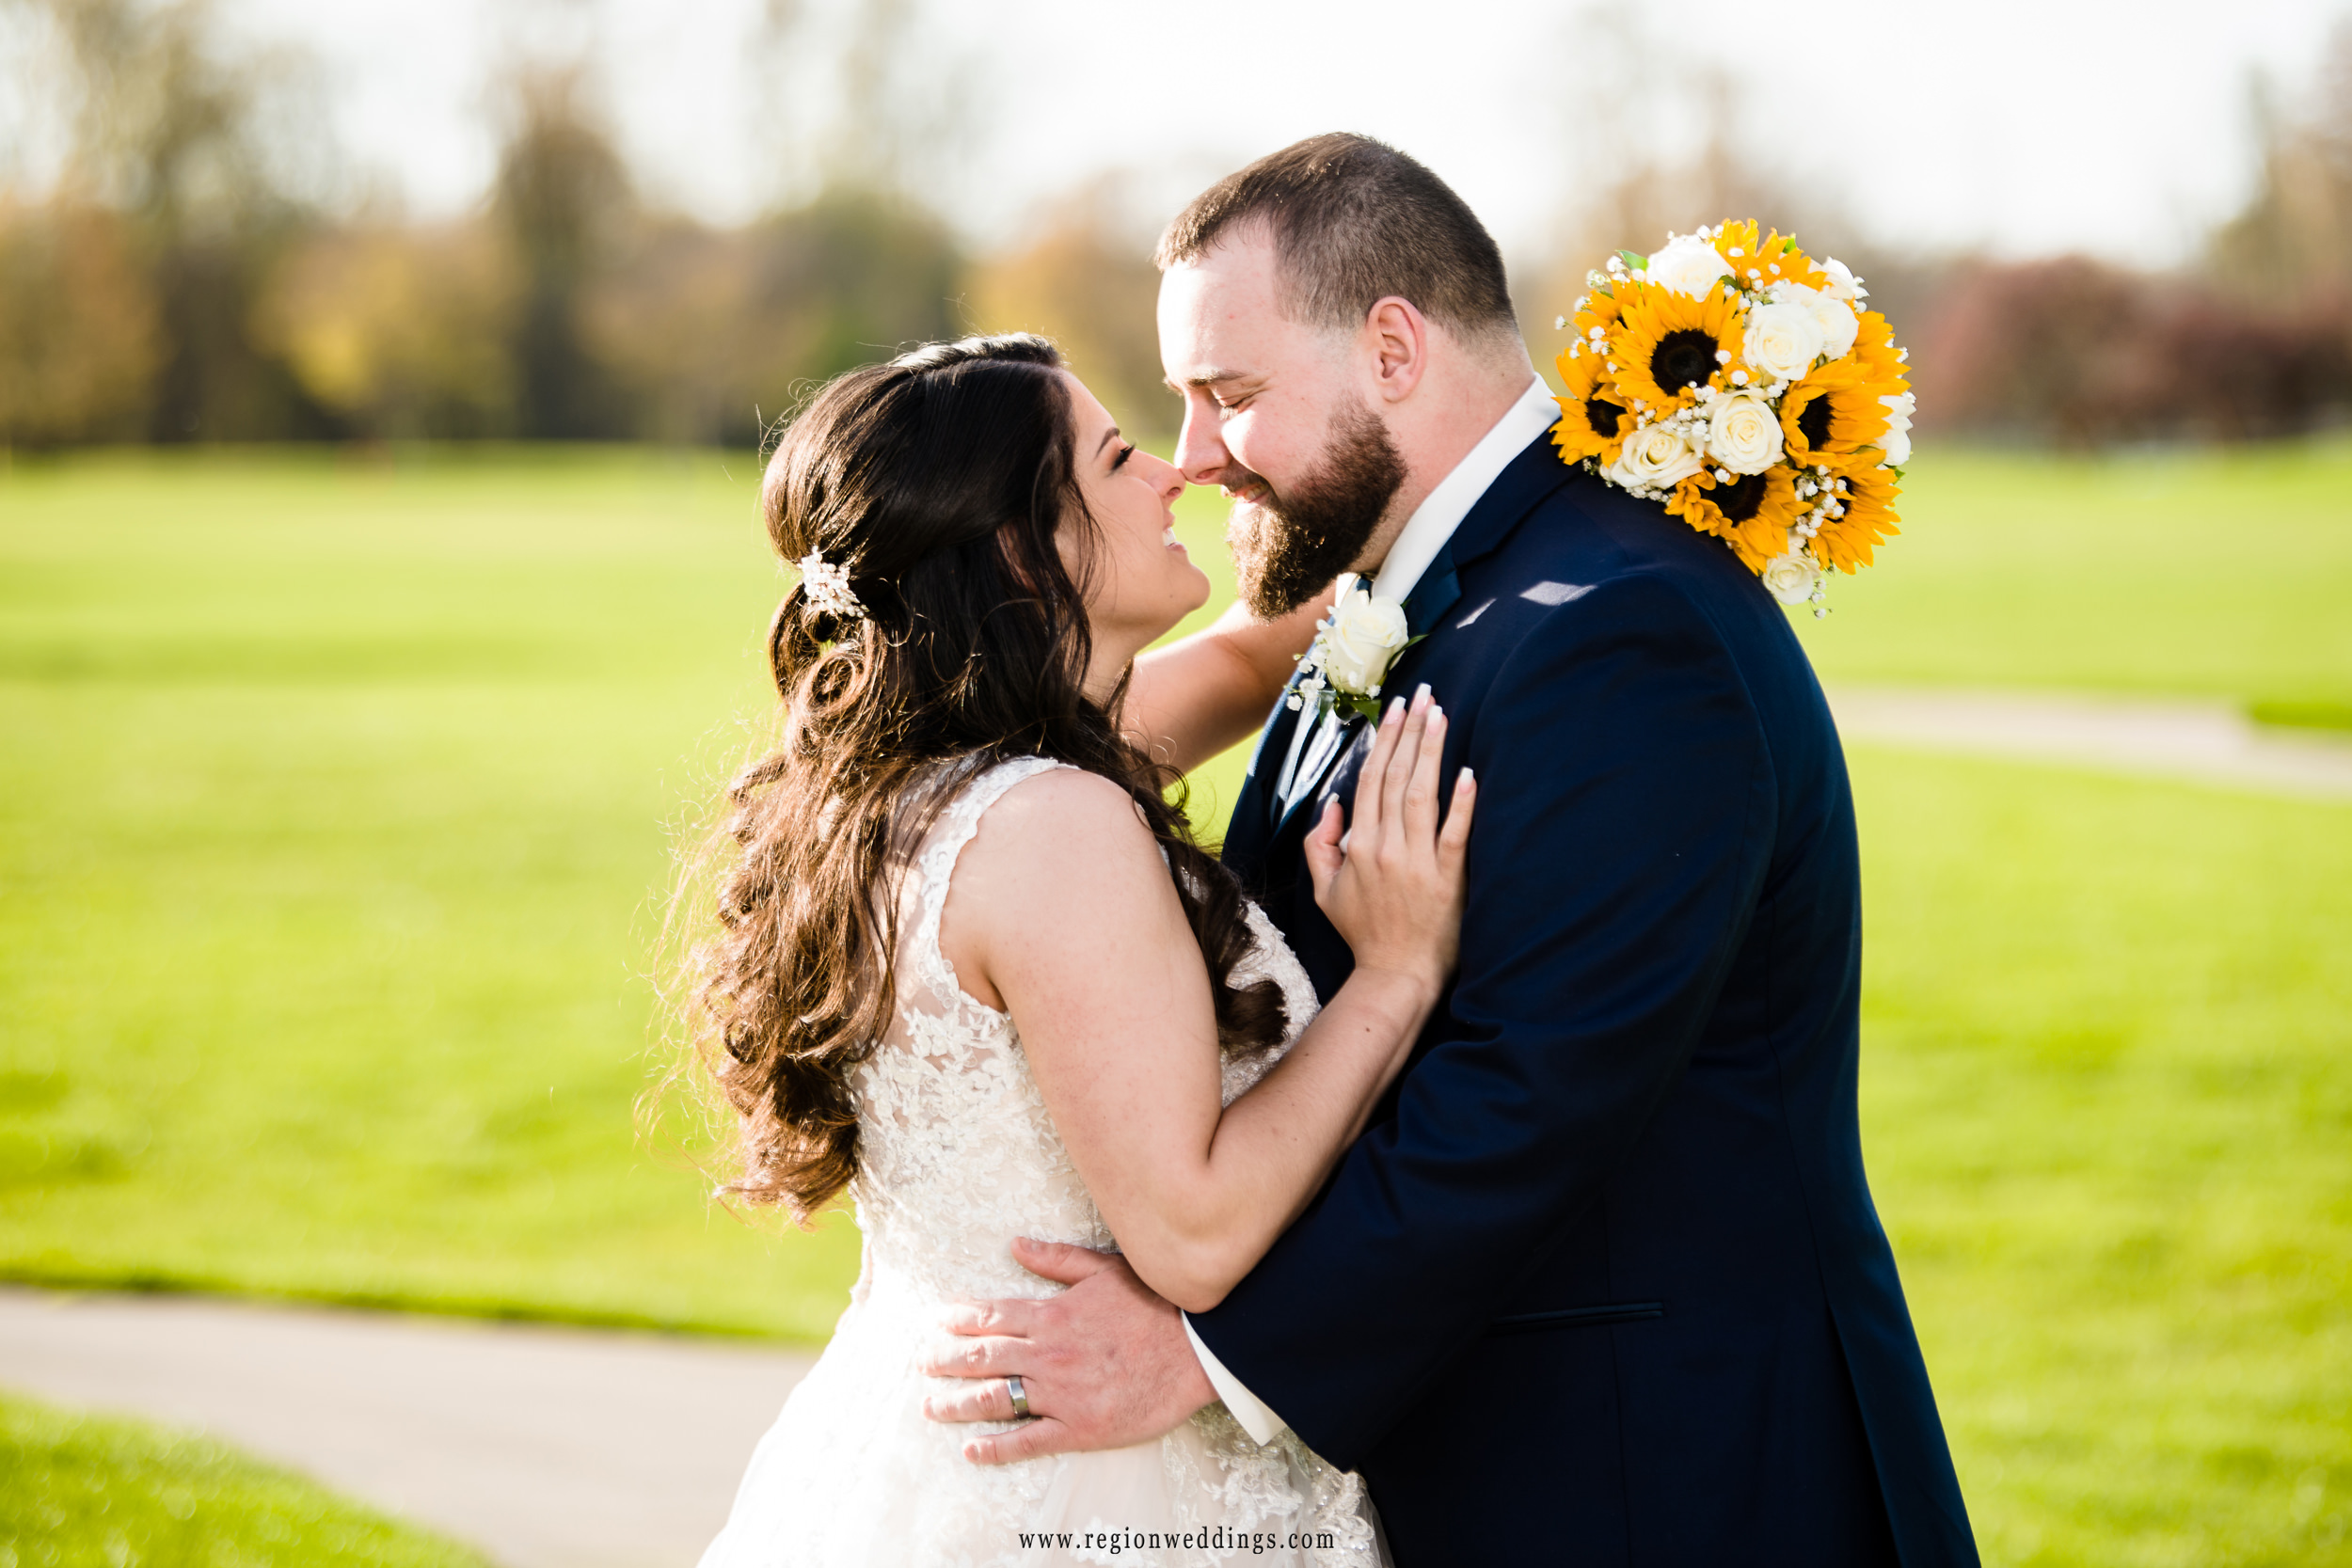 The bride and groom nuzzle noses for their Spring wedding photos.